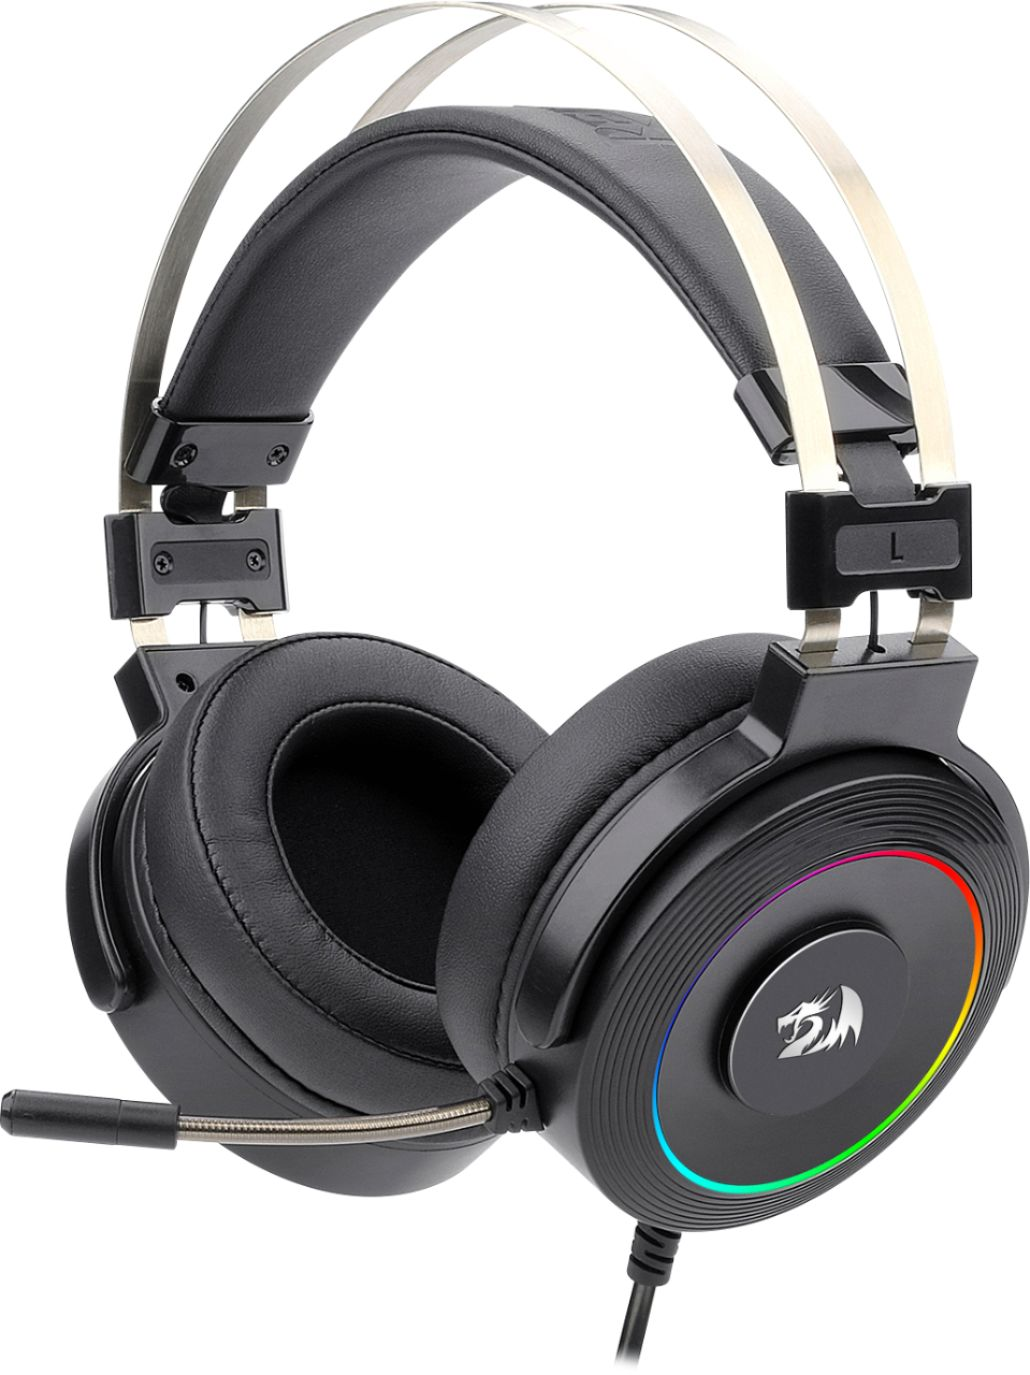 Redragon H320RGB-1 Lamia 2 RGB Wired Gaming Headset